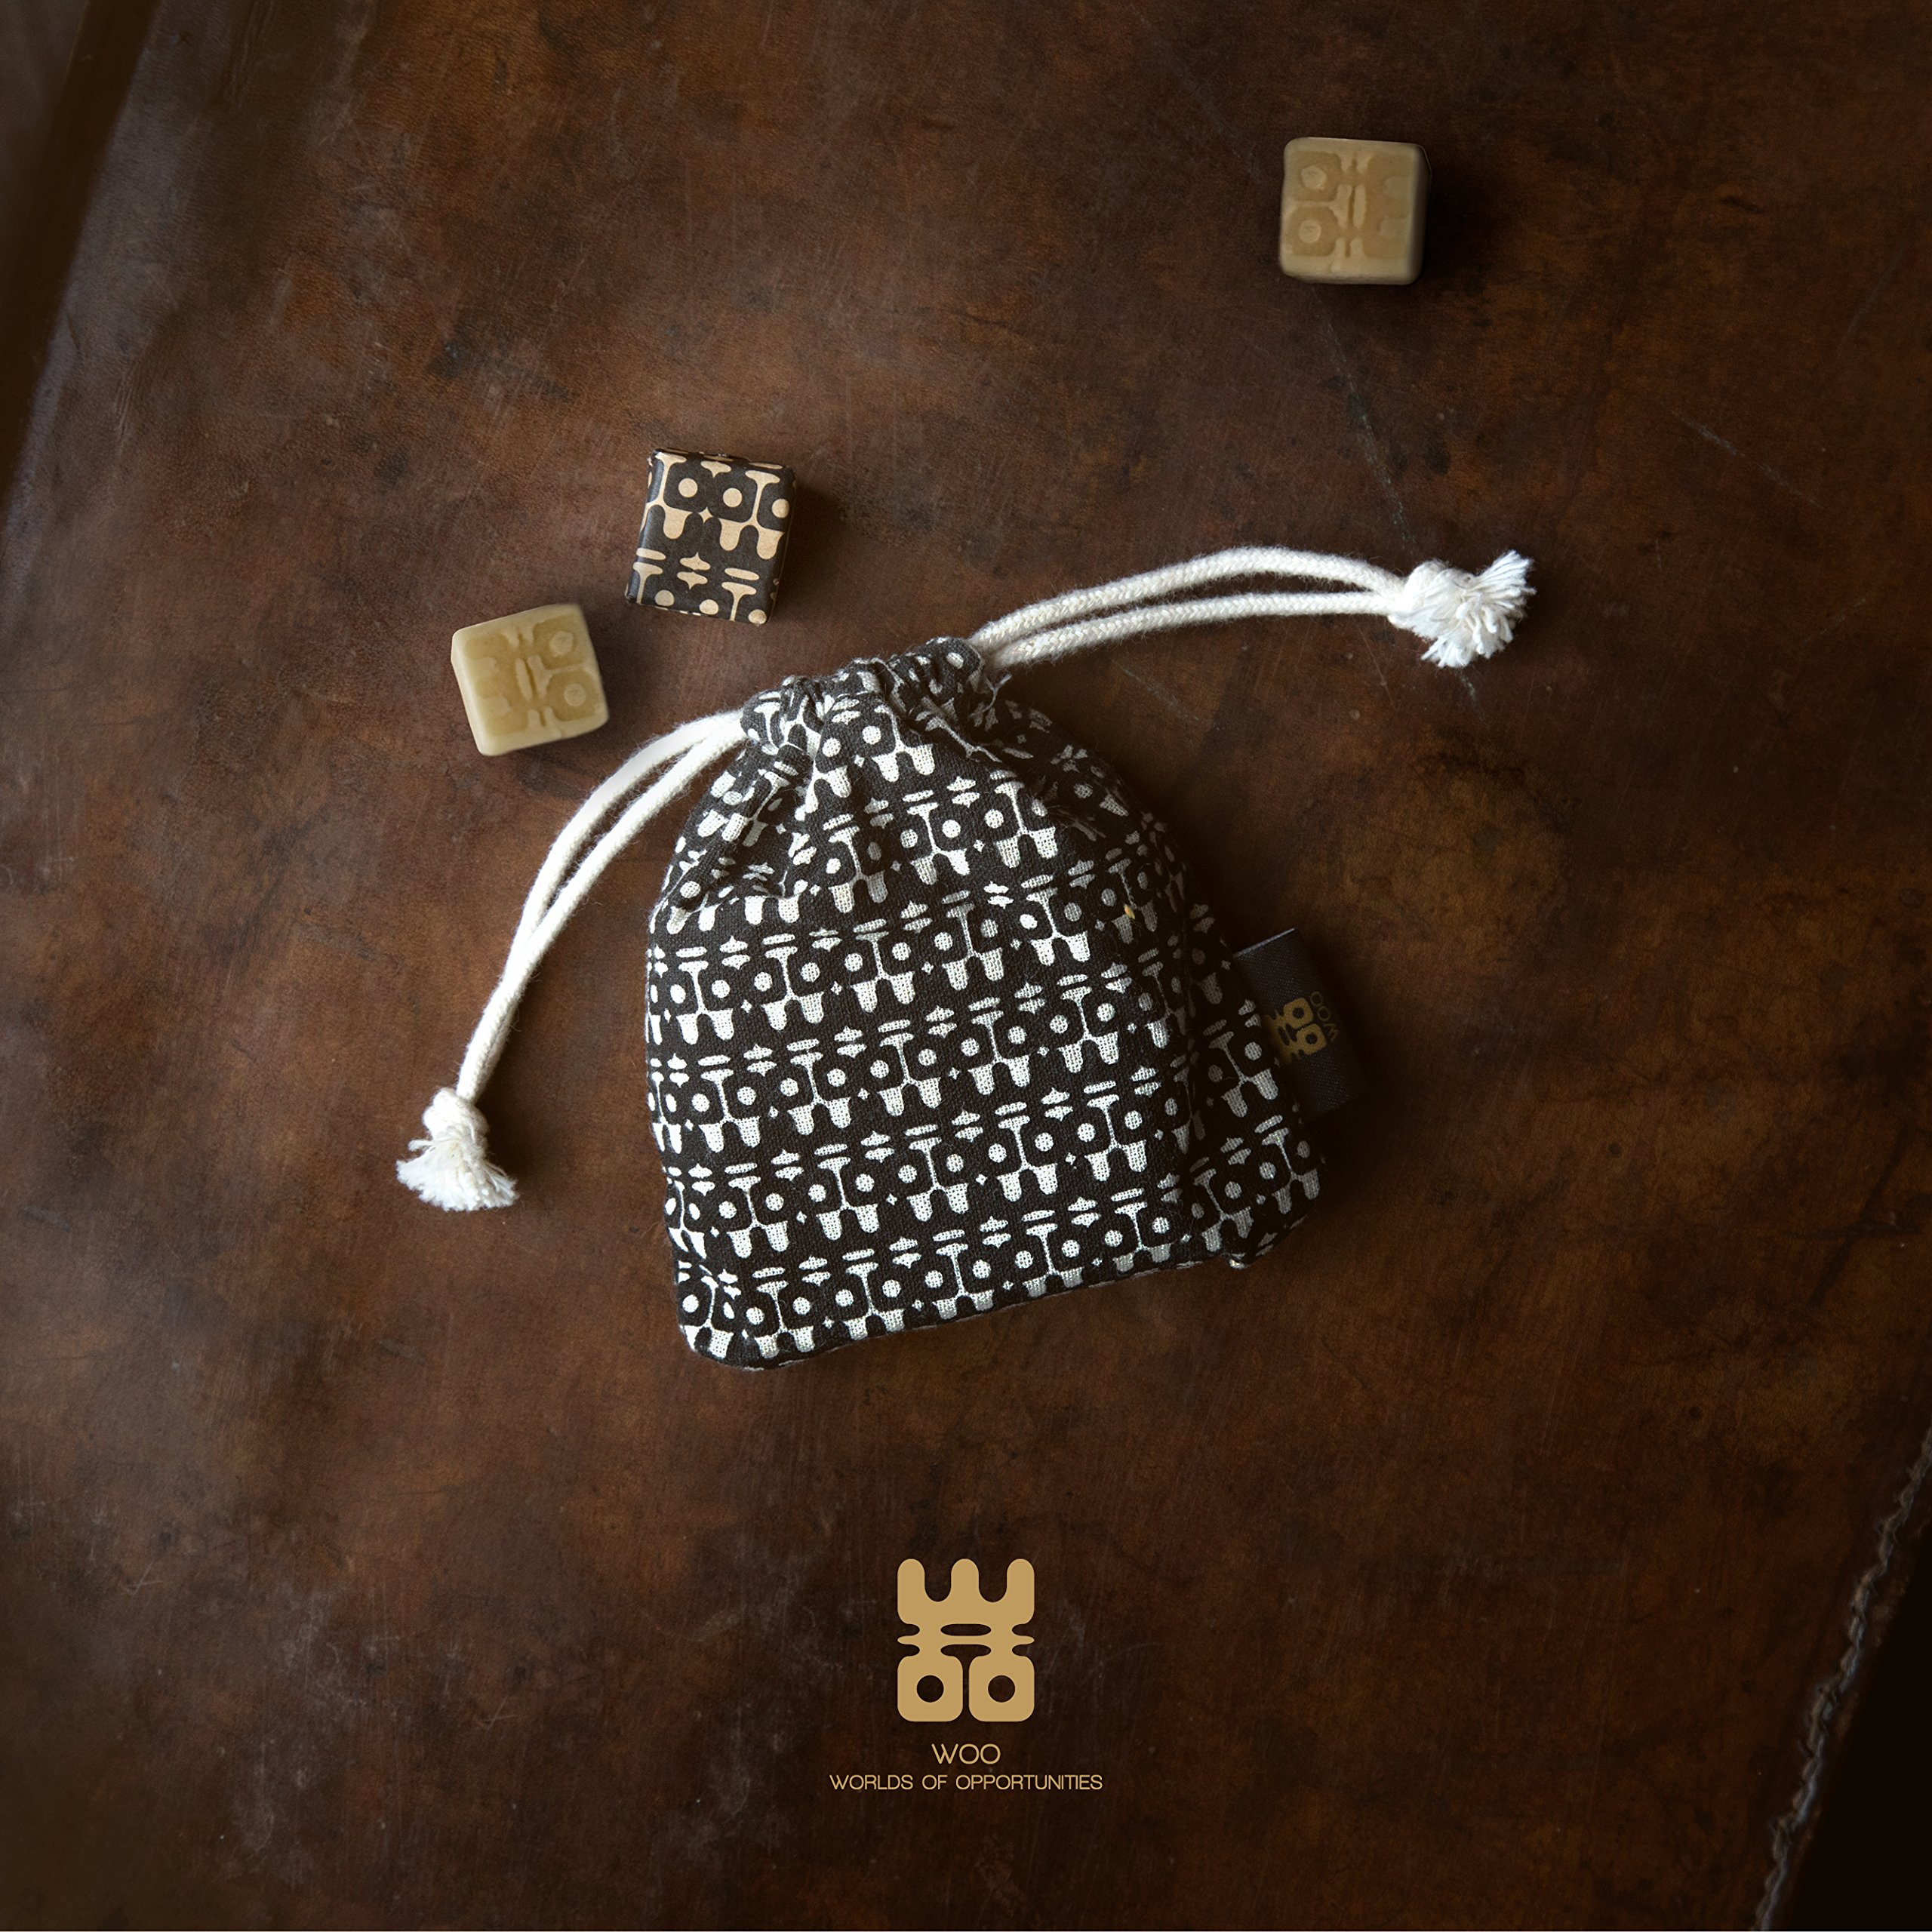 WOO Eco-Friendly Scented Sachets by Premium Handmade Beeswax Scented Cubes in an Exquisite Cotton Sachet | Perfect for Wardrobes, Drawers and Rooms | Lasts for Years (Treasure) by WOO (Image #6)